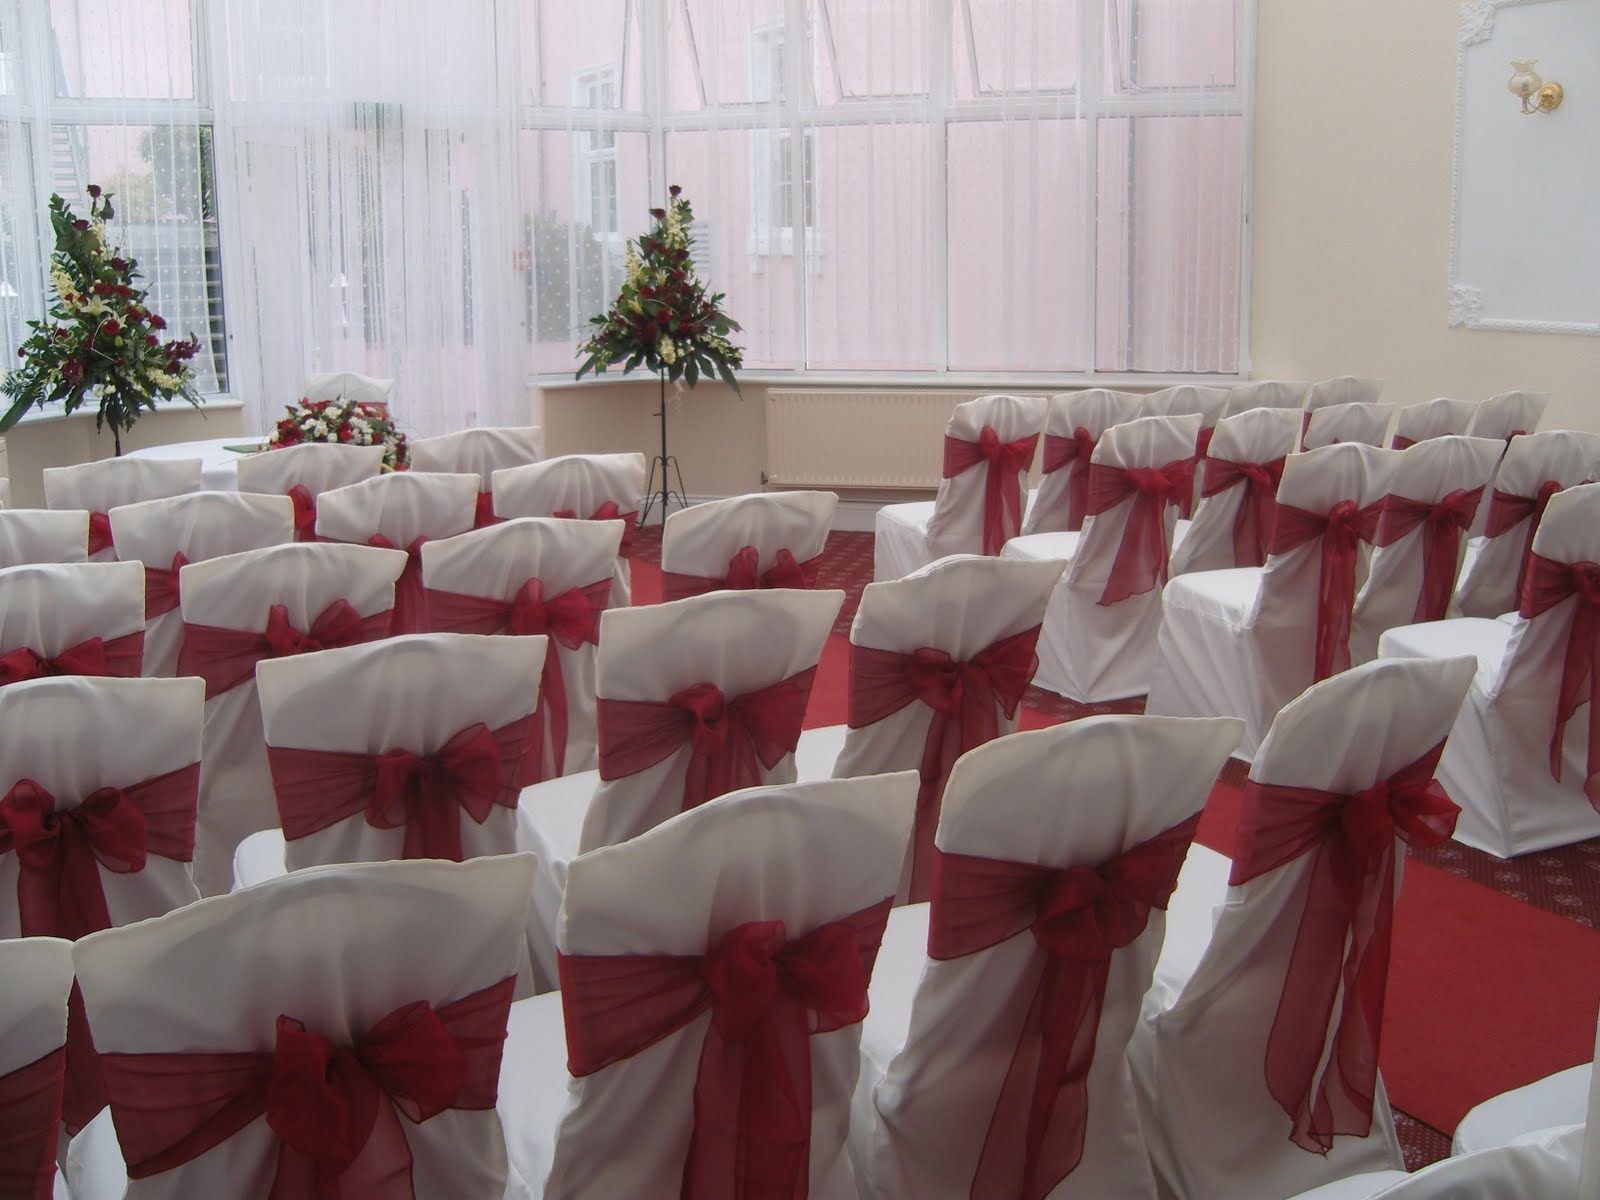 wedding chair covers devon strongback coupon southwestchaircovers co uk elfordleigh hotel plymouth